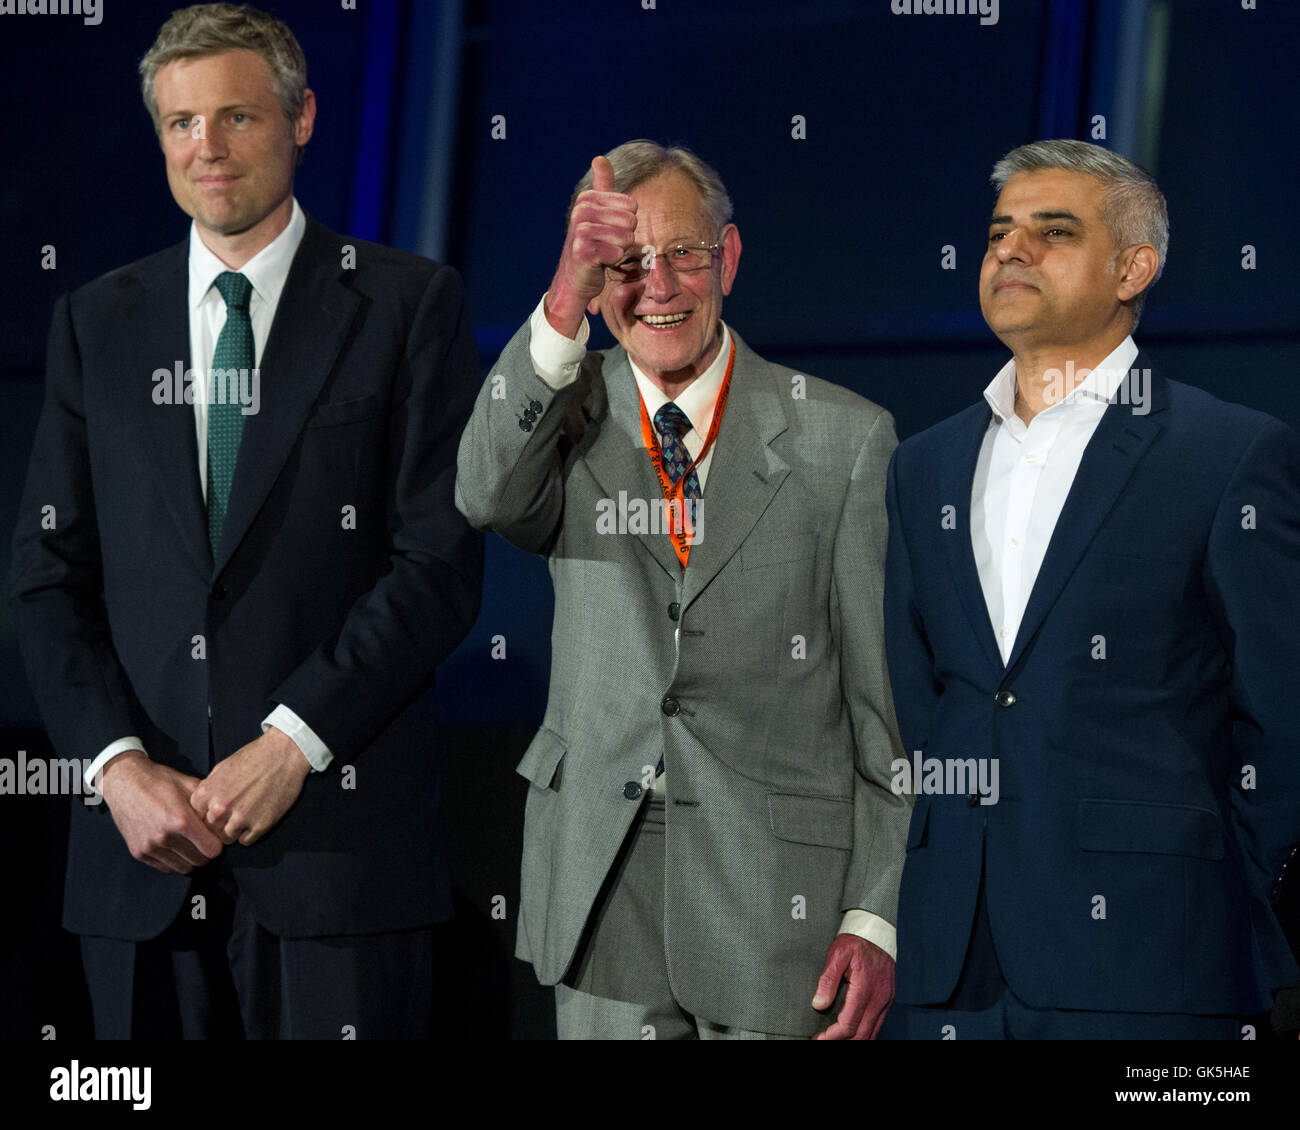 Sadiq Khan takes the stage after being elected as the new Mayor of London.  Featuring: Zac Goldsmith, Lee Harris, - Stock Image